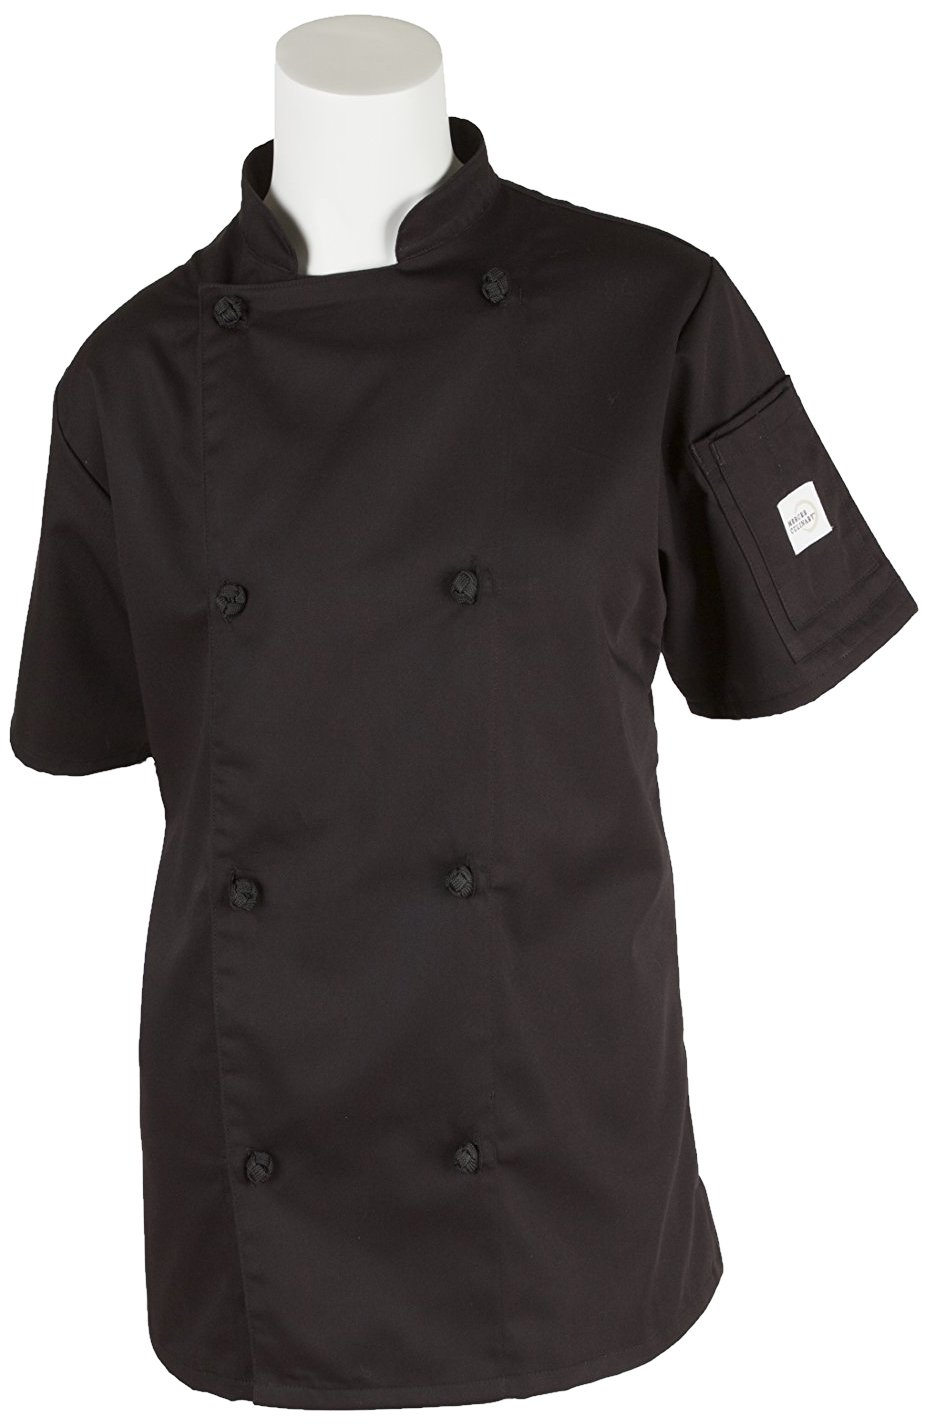 Mercer Culinary M61042BKL Genesis Women's Short Sleeve Chef Jacket with Cloth Knot Buttons, Large, Black